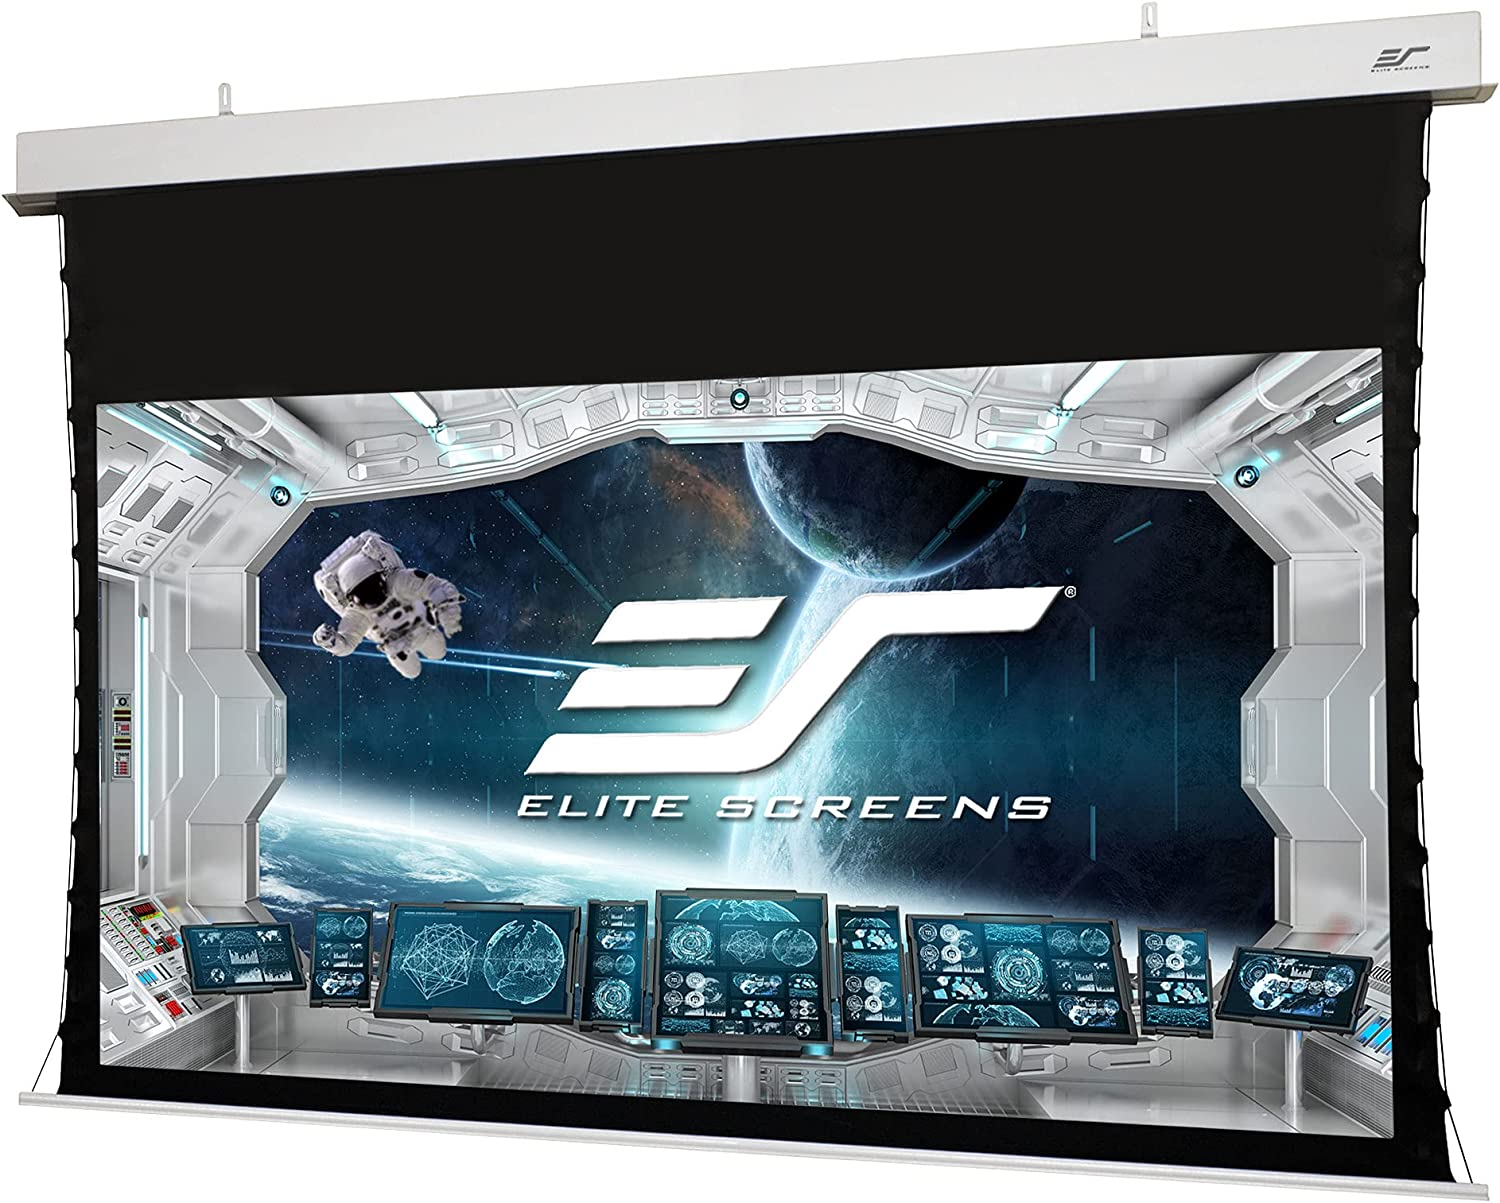 Elite Screens Evanesce Tab-Tension B 115 Inch Projector Screen, Diagonal 16:9, Electric Recessed in-Ceiling Tensioned Ceiling/Ambient Light Rejecting (CLR/ALR) Projection Screen, ETB115H5D-E8